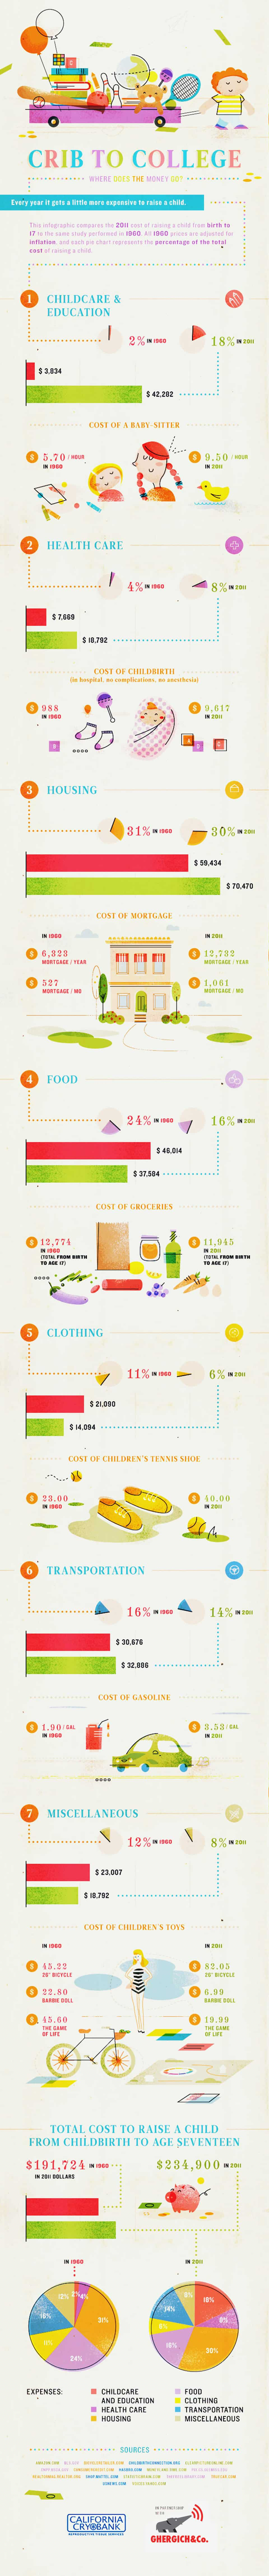 Crib to College: Where Does the Money Go?